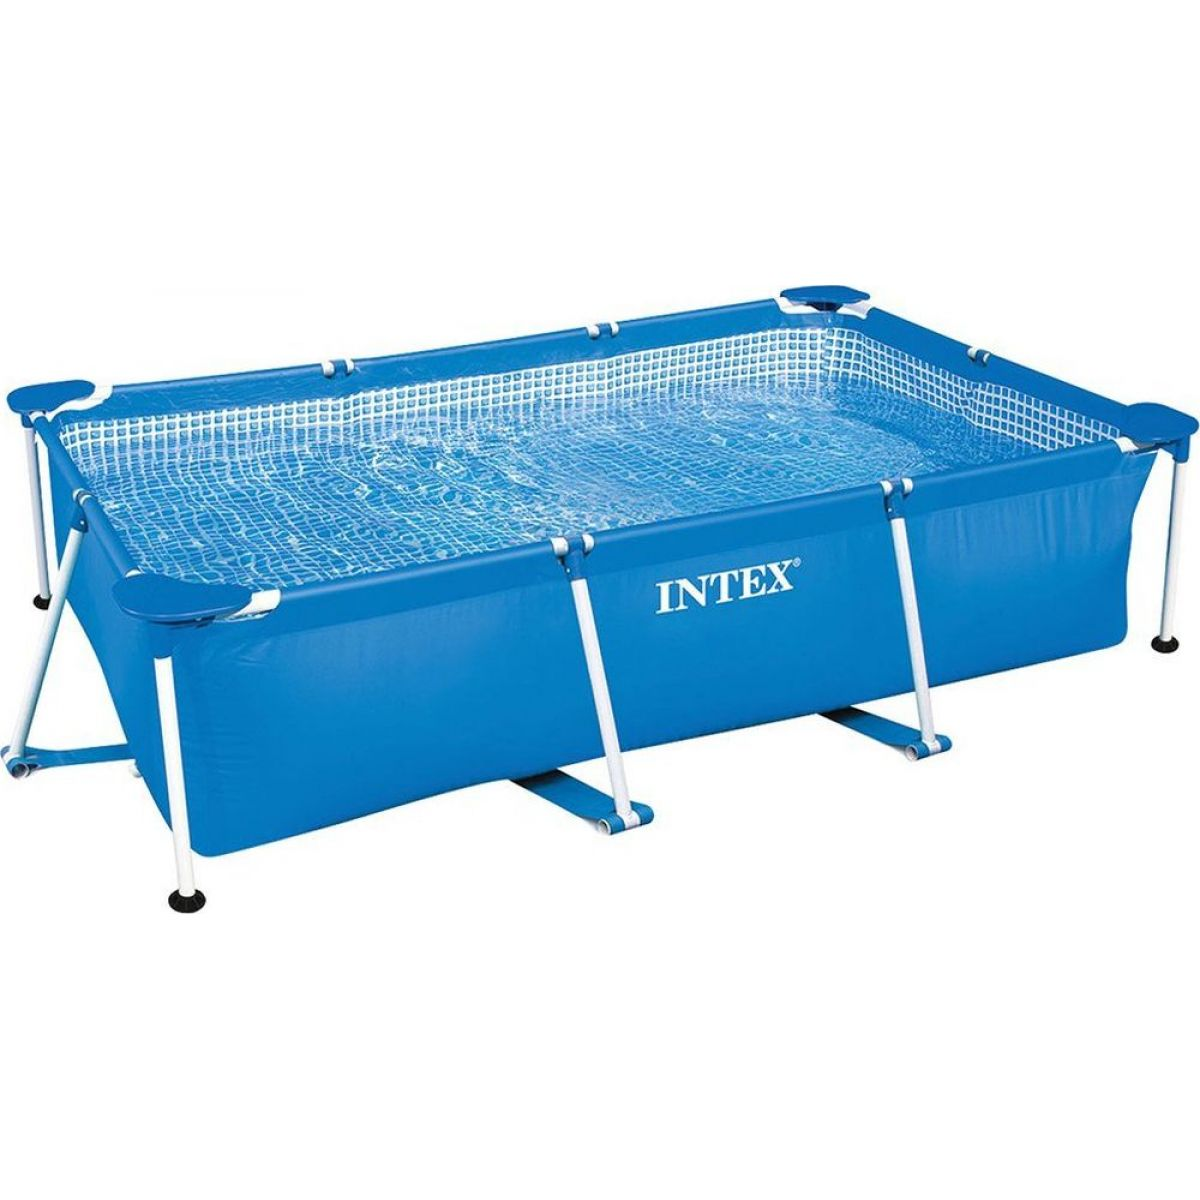 Intex 28270 Metal Frame 220 x 150 x 60 cm